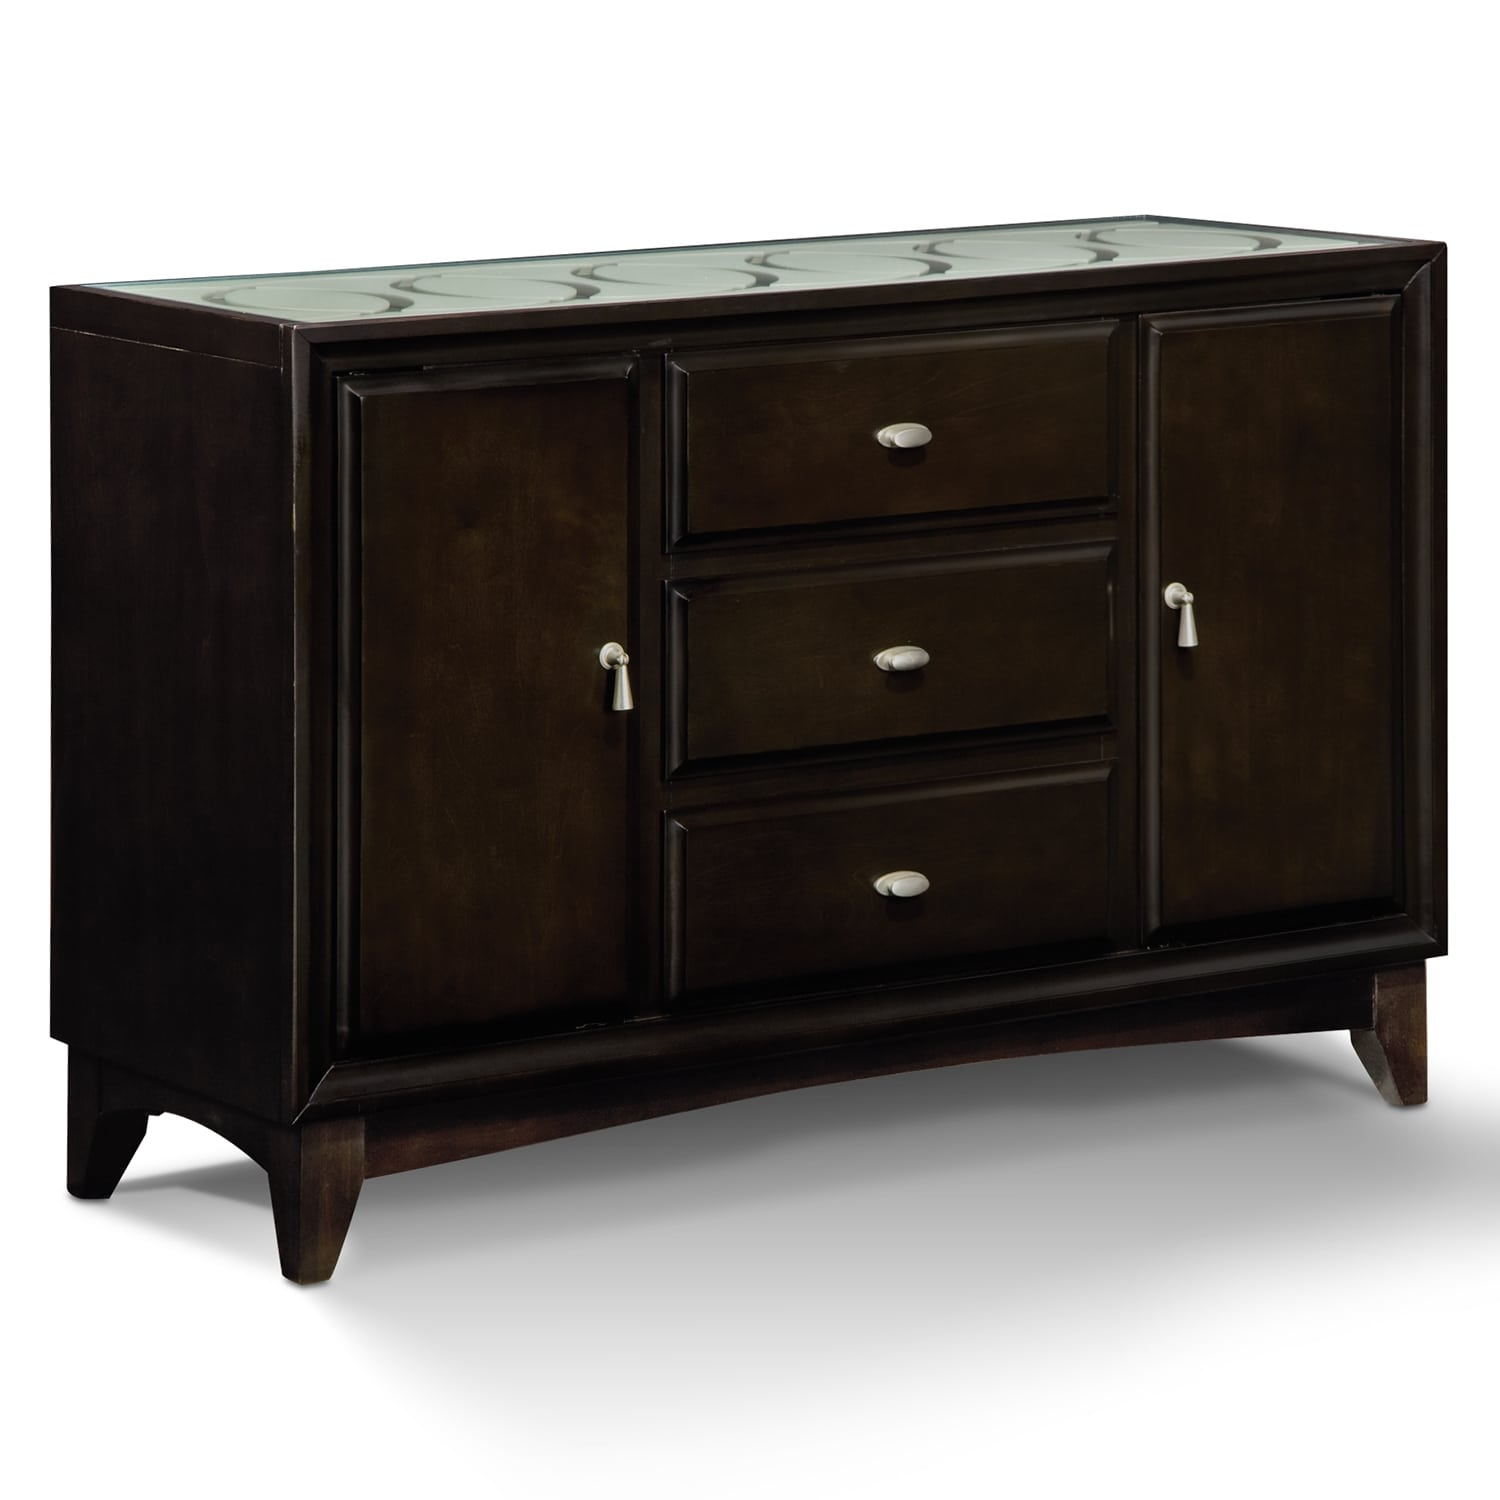 Cosmo sideboard merlot american signature furniture for Dining room sideboard